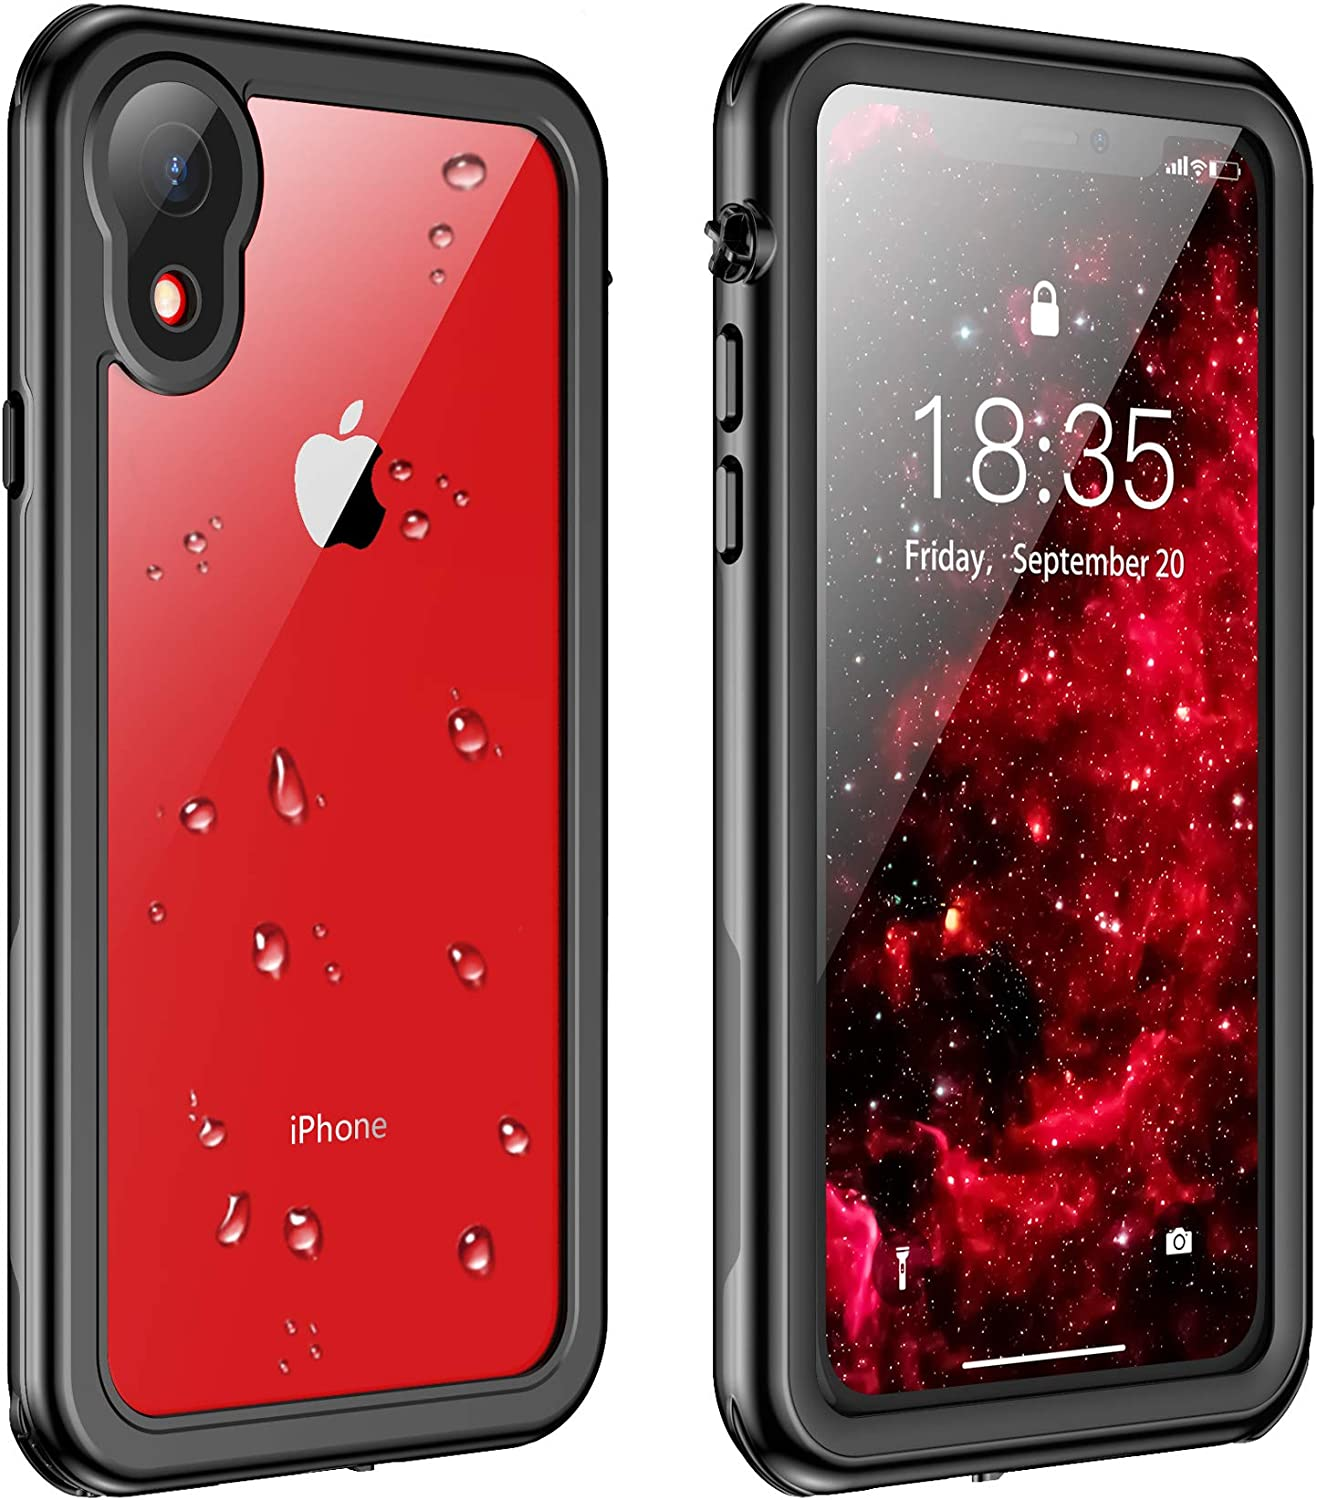 Justcool for iPhone XR Case Waterproof, Full Body with Built-in Screen Protector Rugged Clear Case for iPhone XR 6.1 inch (Black/Clear)